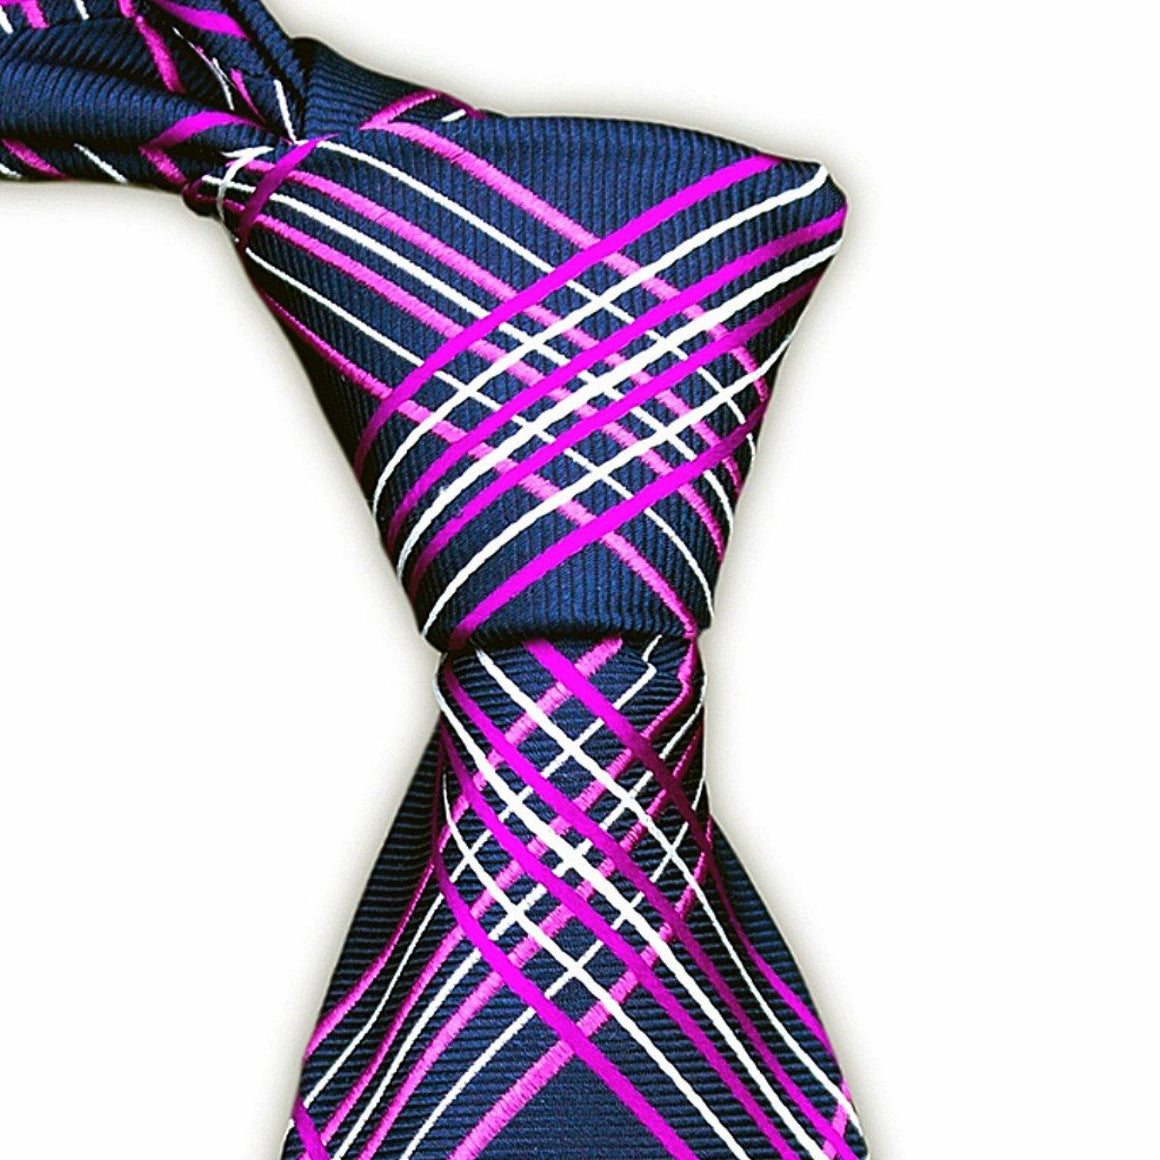 Morgan - TieThis Neckwear and Accessories and TieThis.com